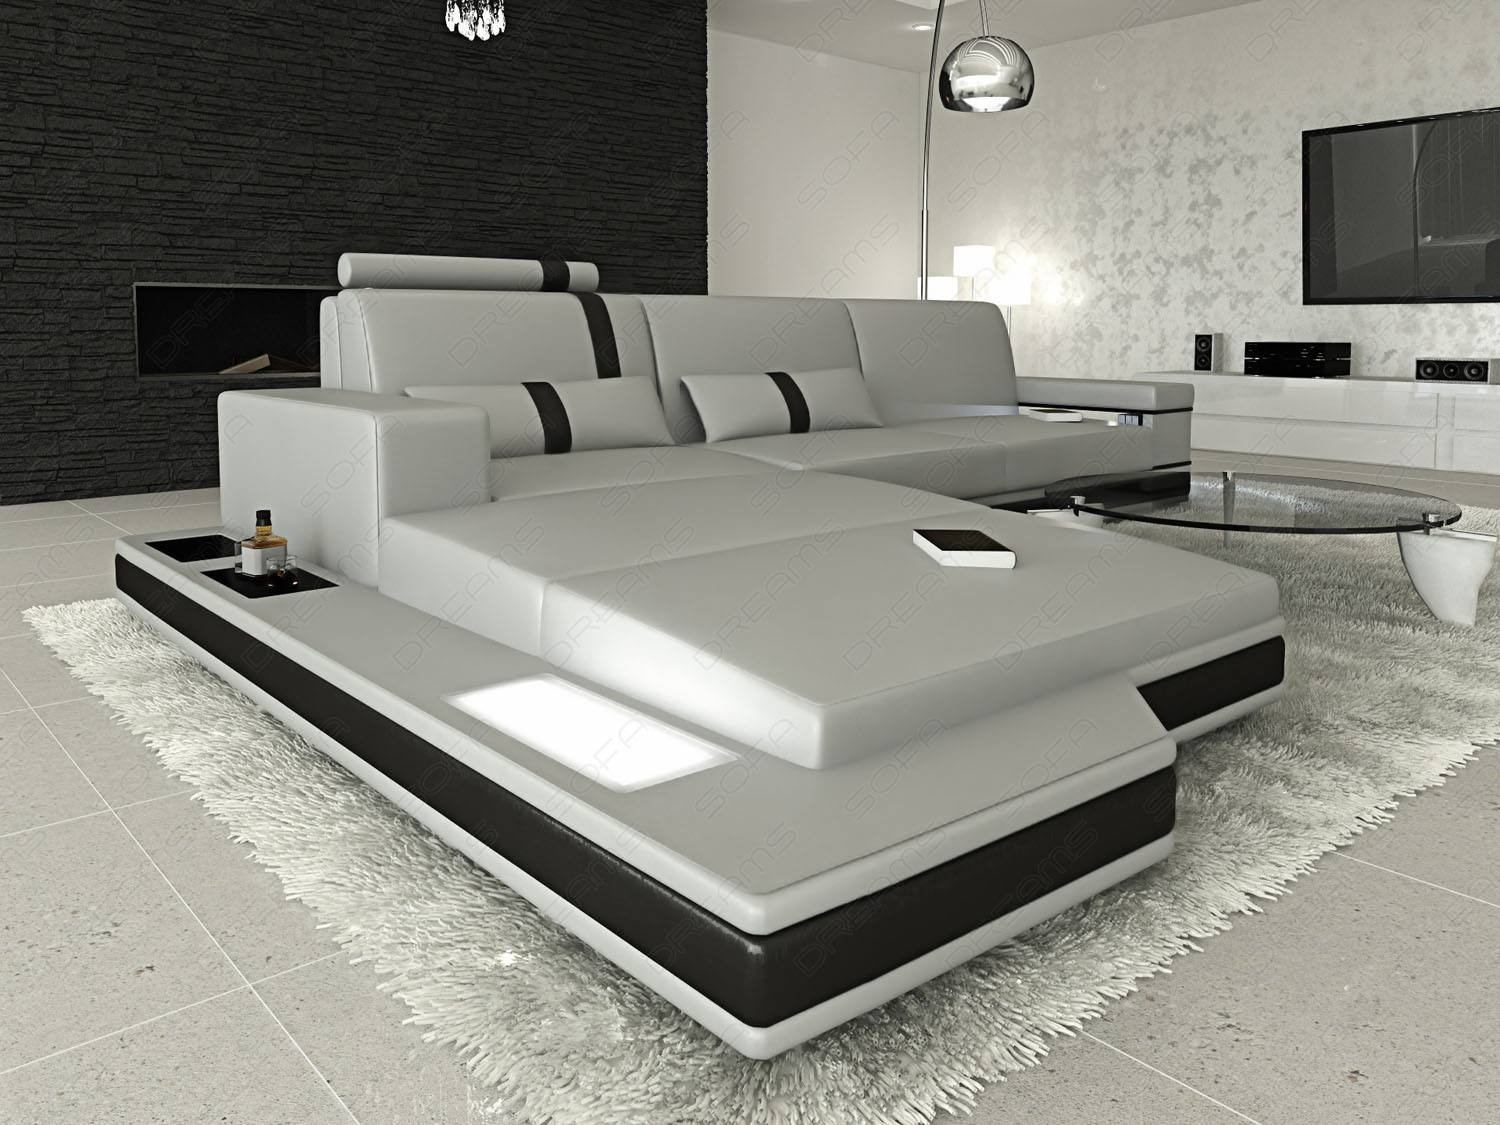 Sofa Couch Grau Designer Design L Shaped Sofa Los Angeles With Lights